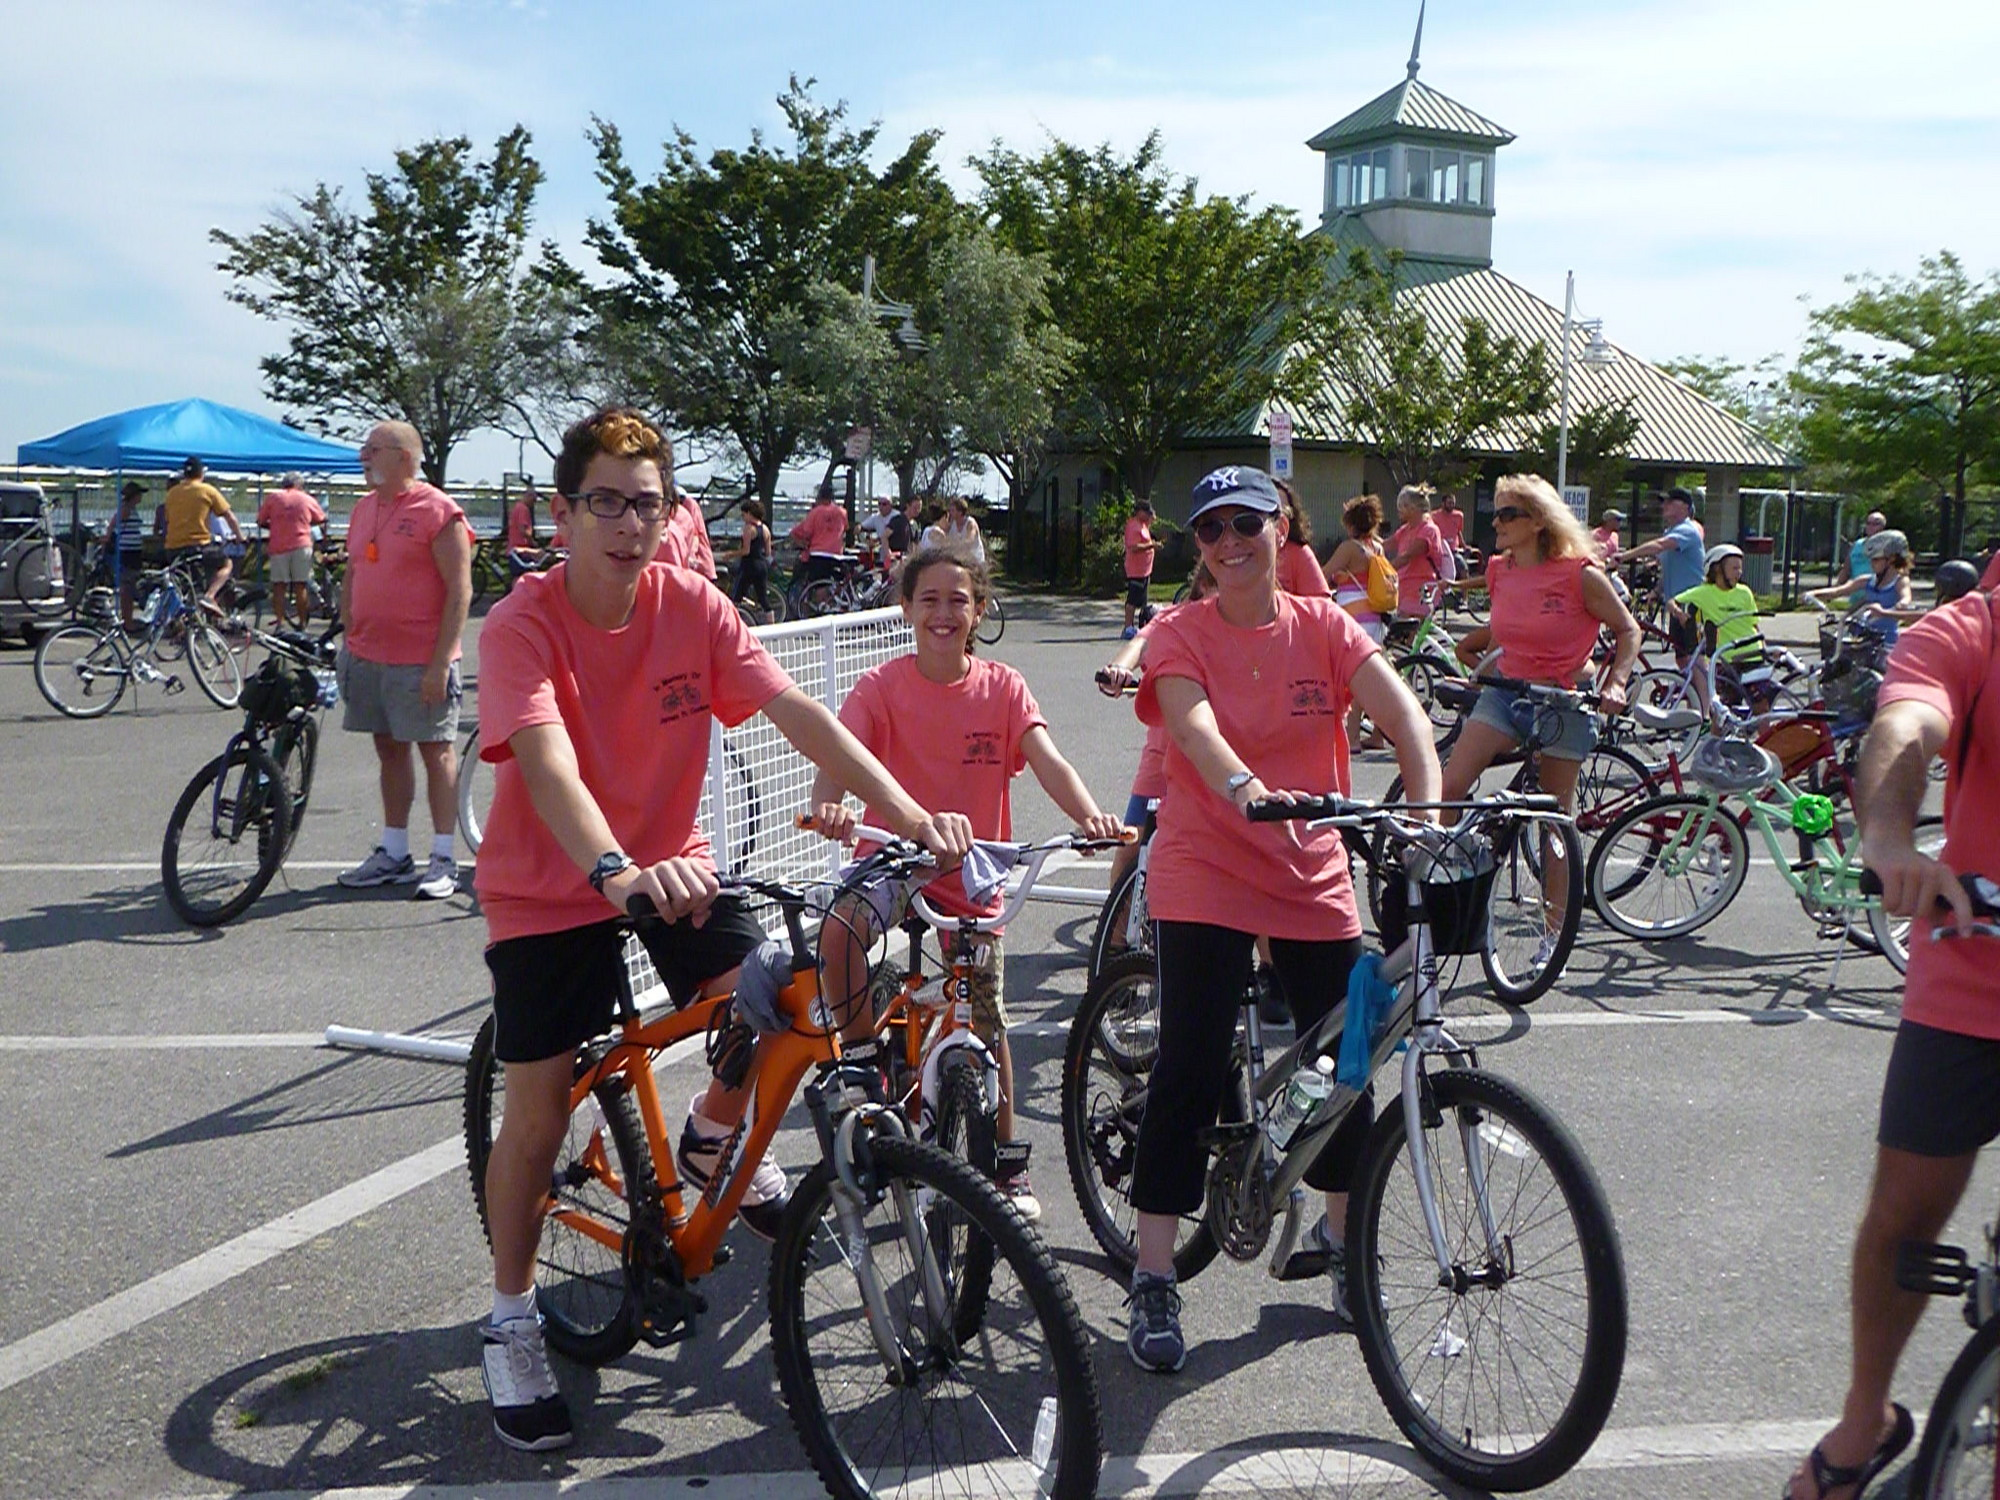 Riders departed from the Long Beach Recreation Center for the 11-mile ride.